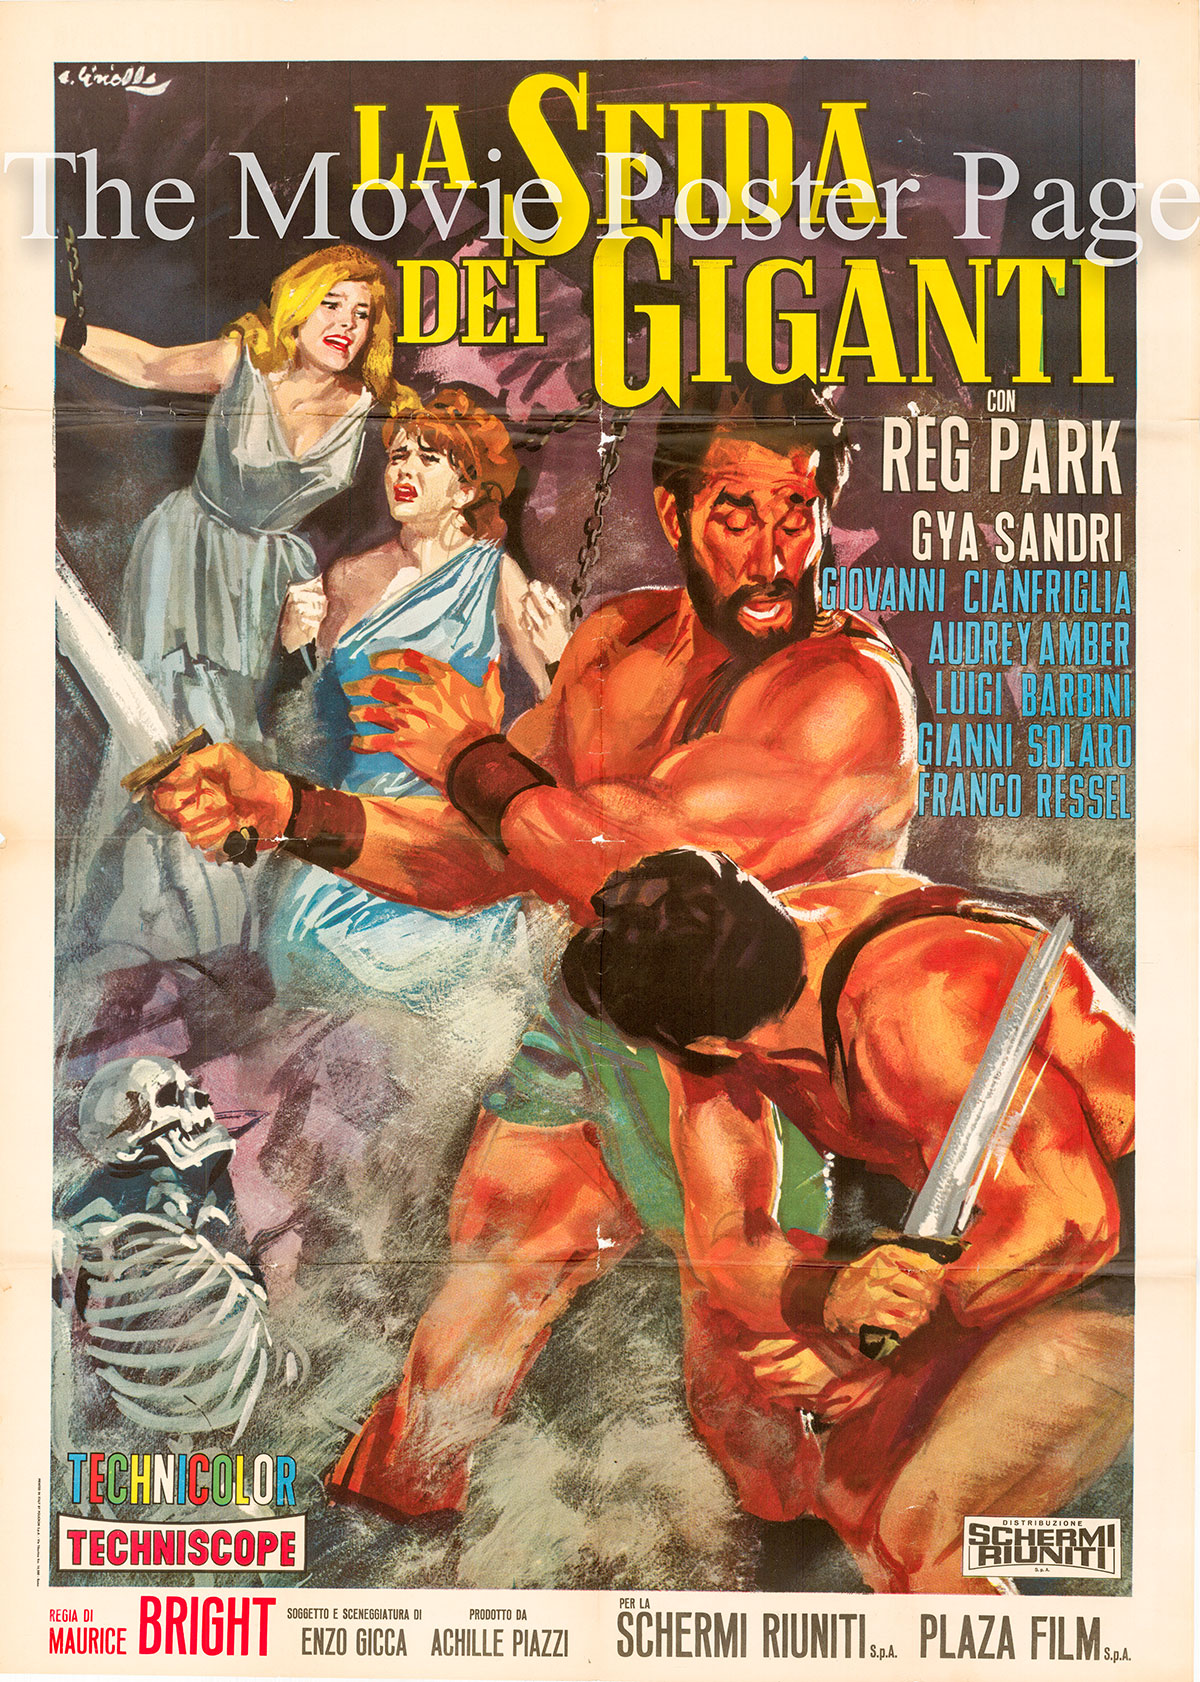 Pictured is an Italian two-sheet promotional poster for the 1965 Maurizio Lucidi film Hercules the Avenger, starring Reg Park.